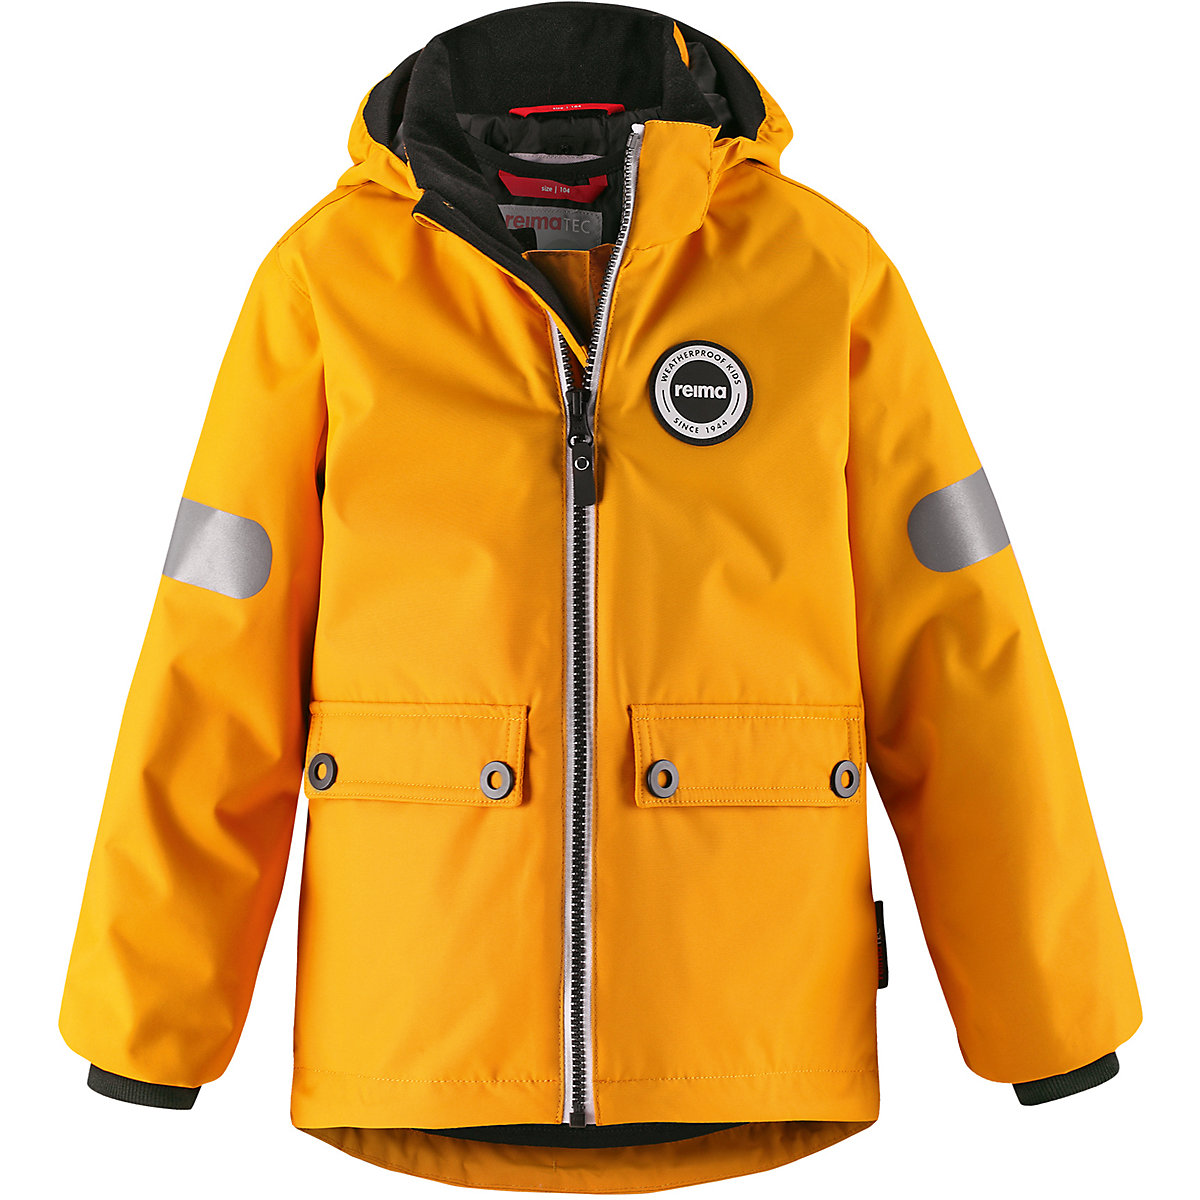 REIMA Jackets 8688906 For boys Polyester  winter fur baby clothing boy Jacket winter jacket men casual male coat warm men zipper outwear duck down jacket middle long mens parka with fur hood thick jackets